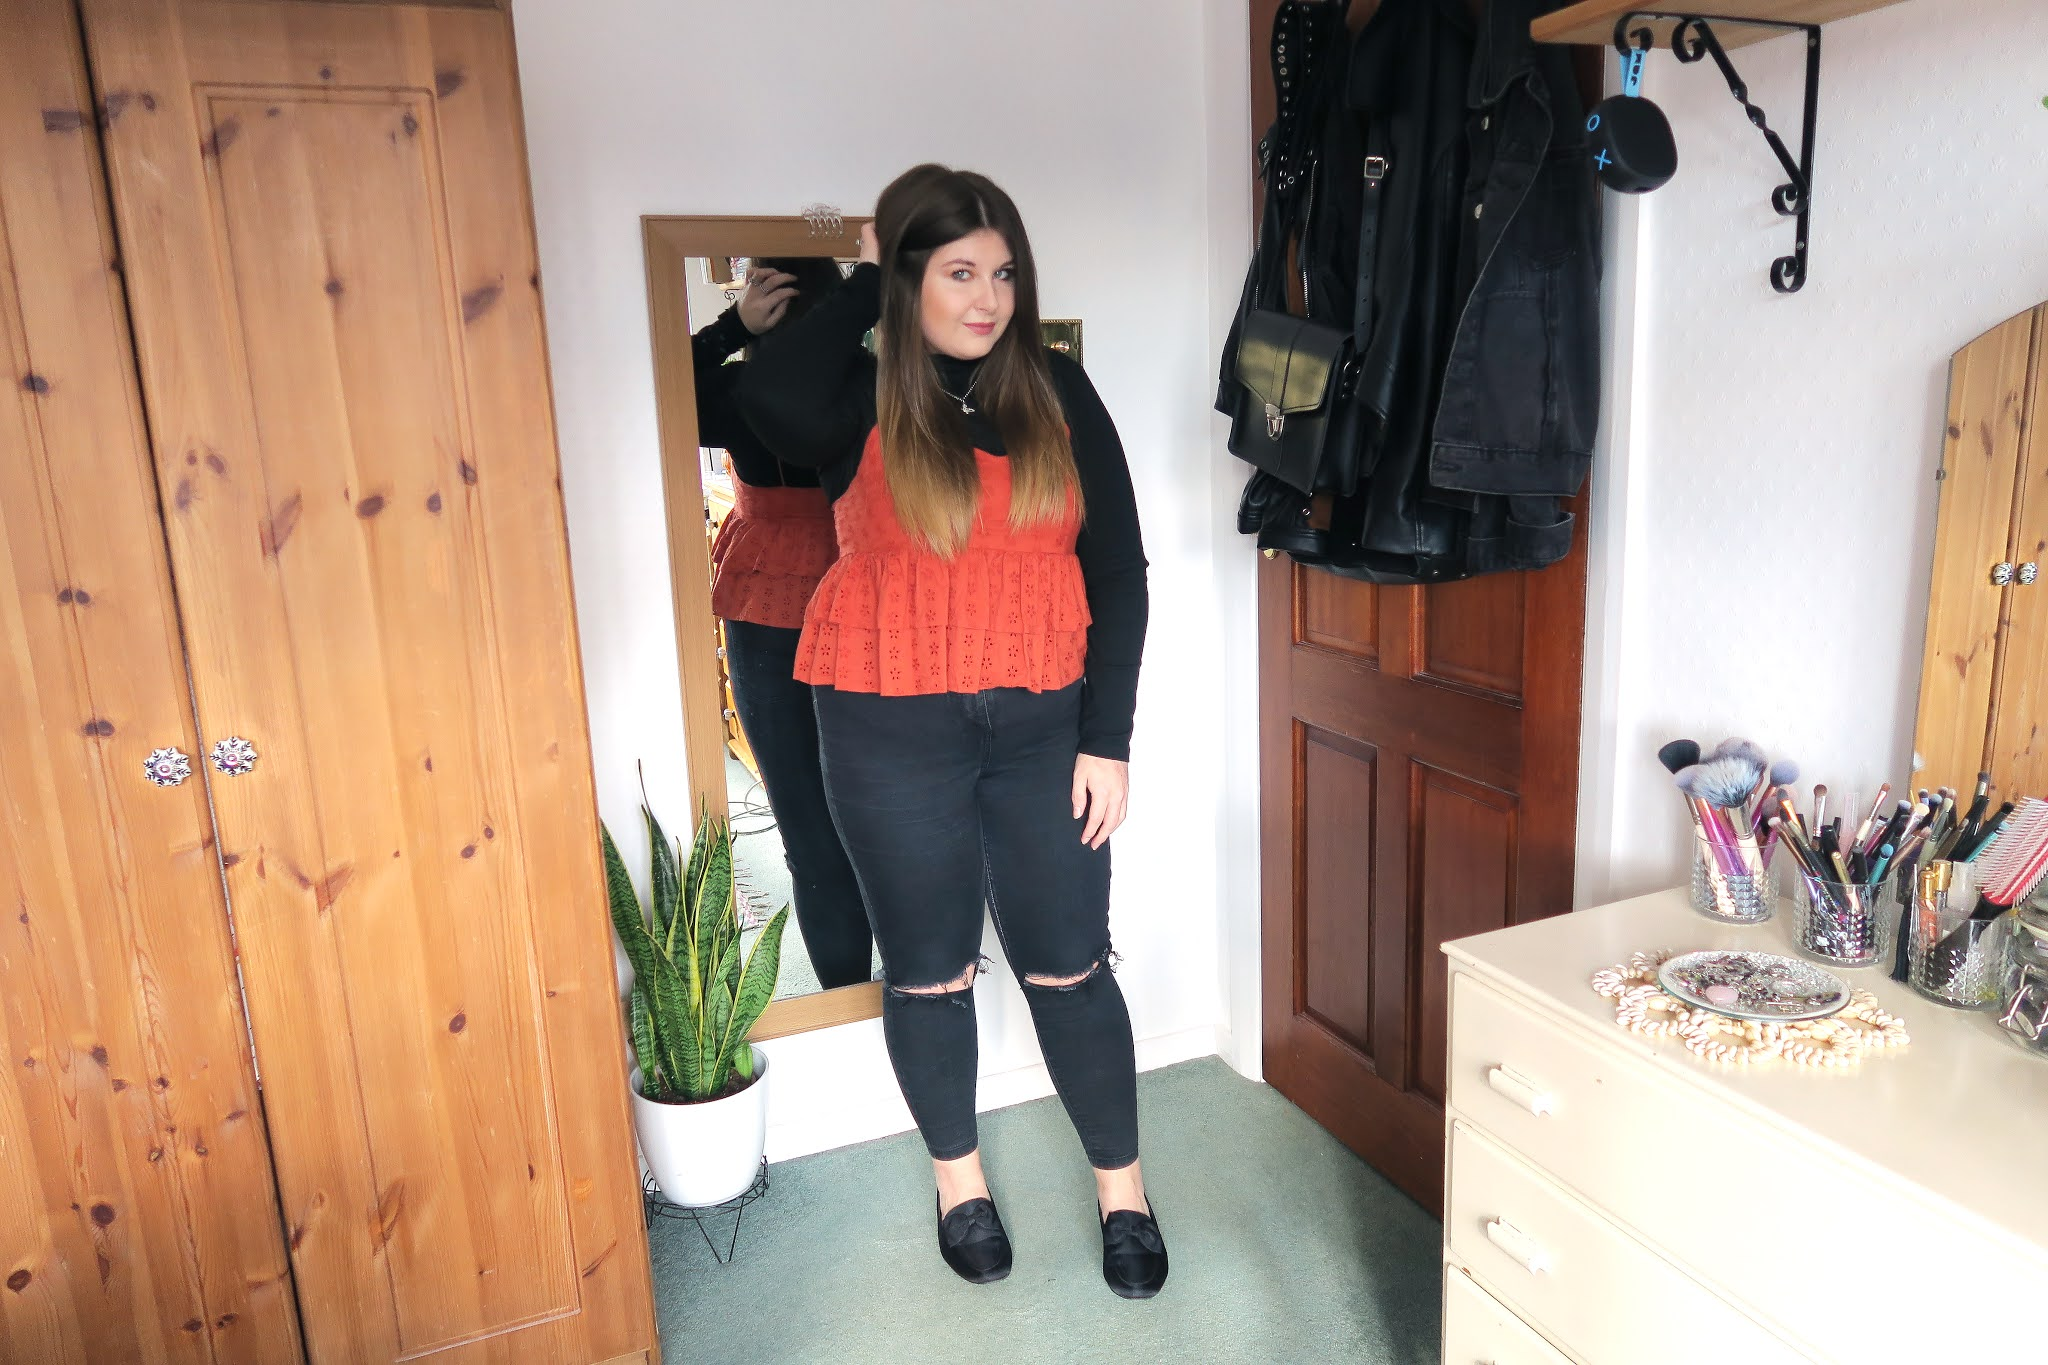 Grace is wearing a plain black roll neck top underneath a burnt orange spaghetti strap vest. She is also wearing a pair of black ripped skinny jeans and a pair of black shoes